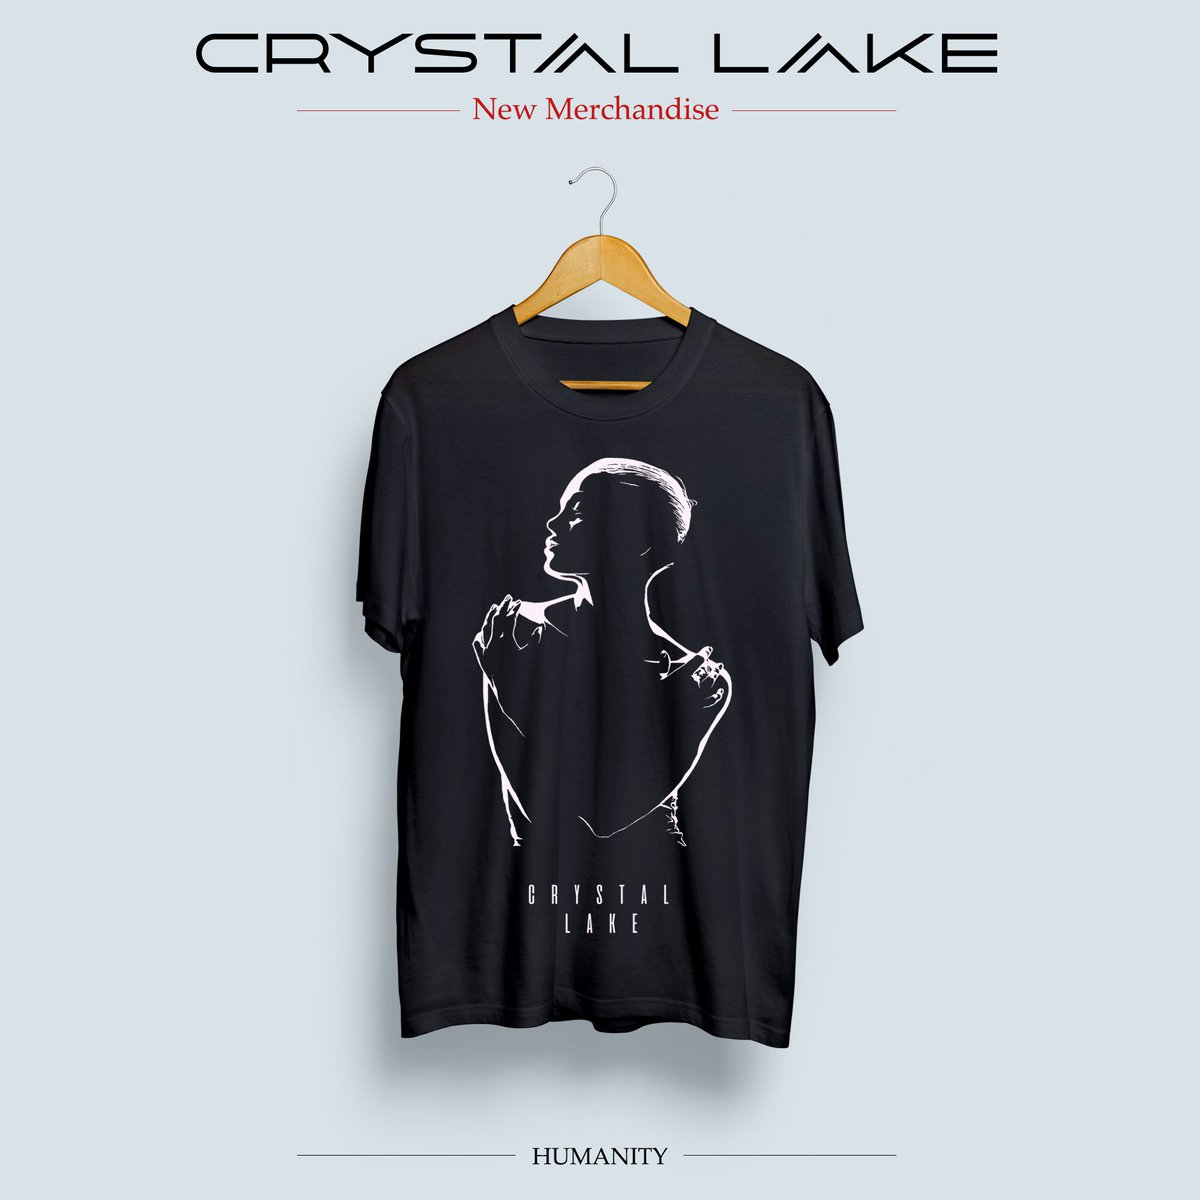 Crystal Lake on Twitter: